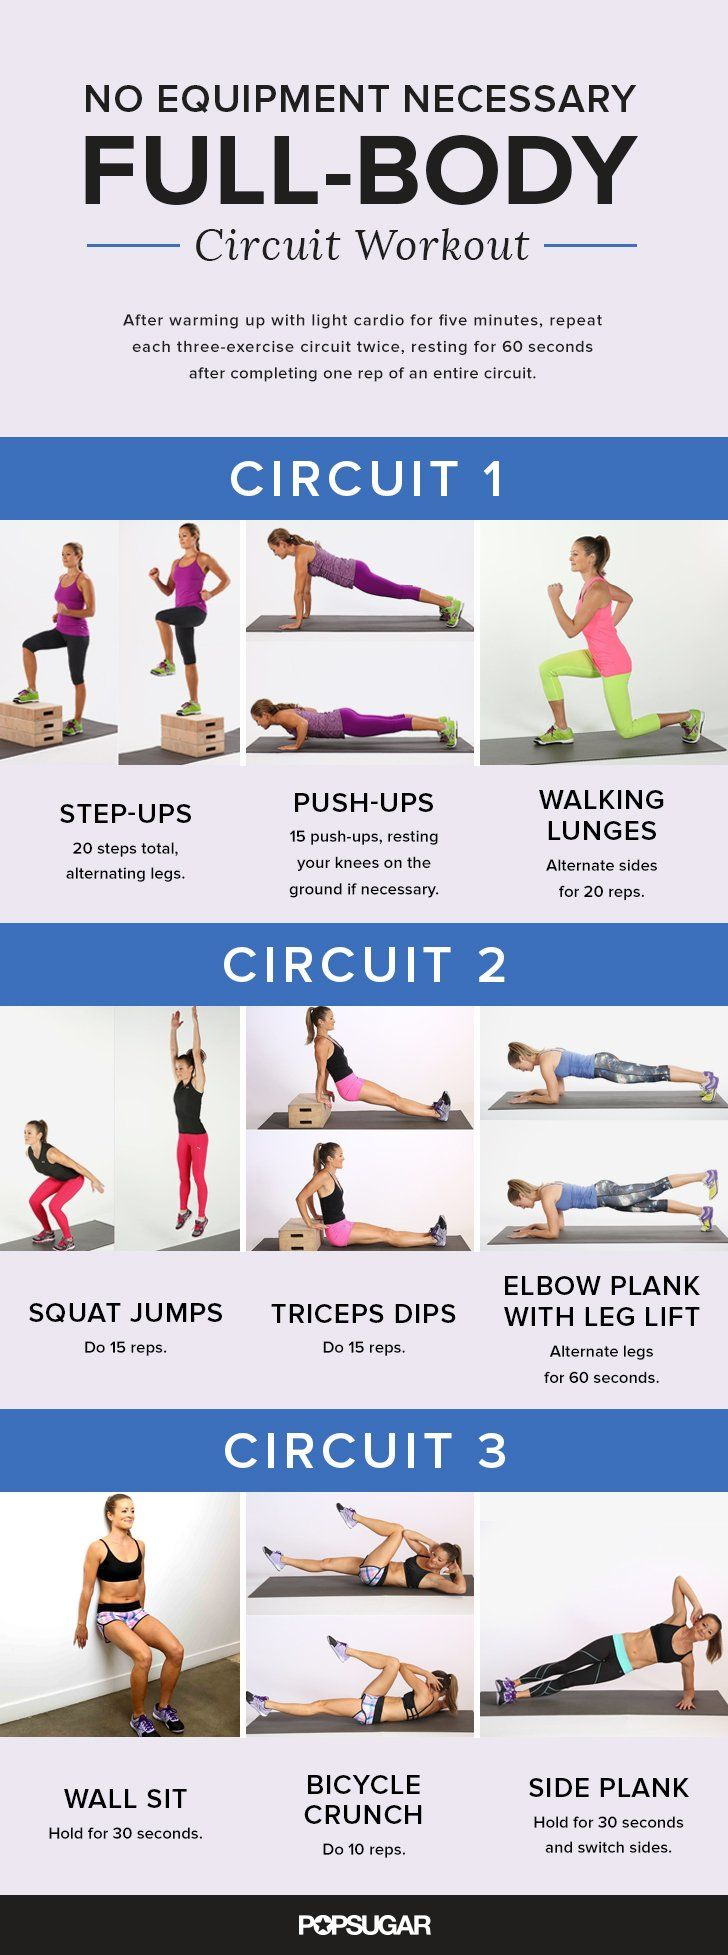 Fitness, Health & Well-Being | No Gym, No Problem! This Circuit Workout Uses Just Your Body | POPSUGAR Fitness